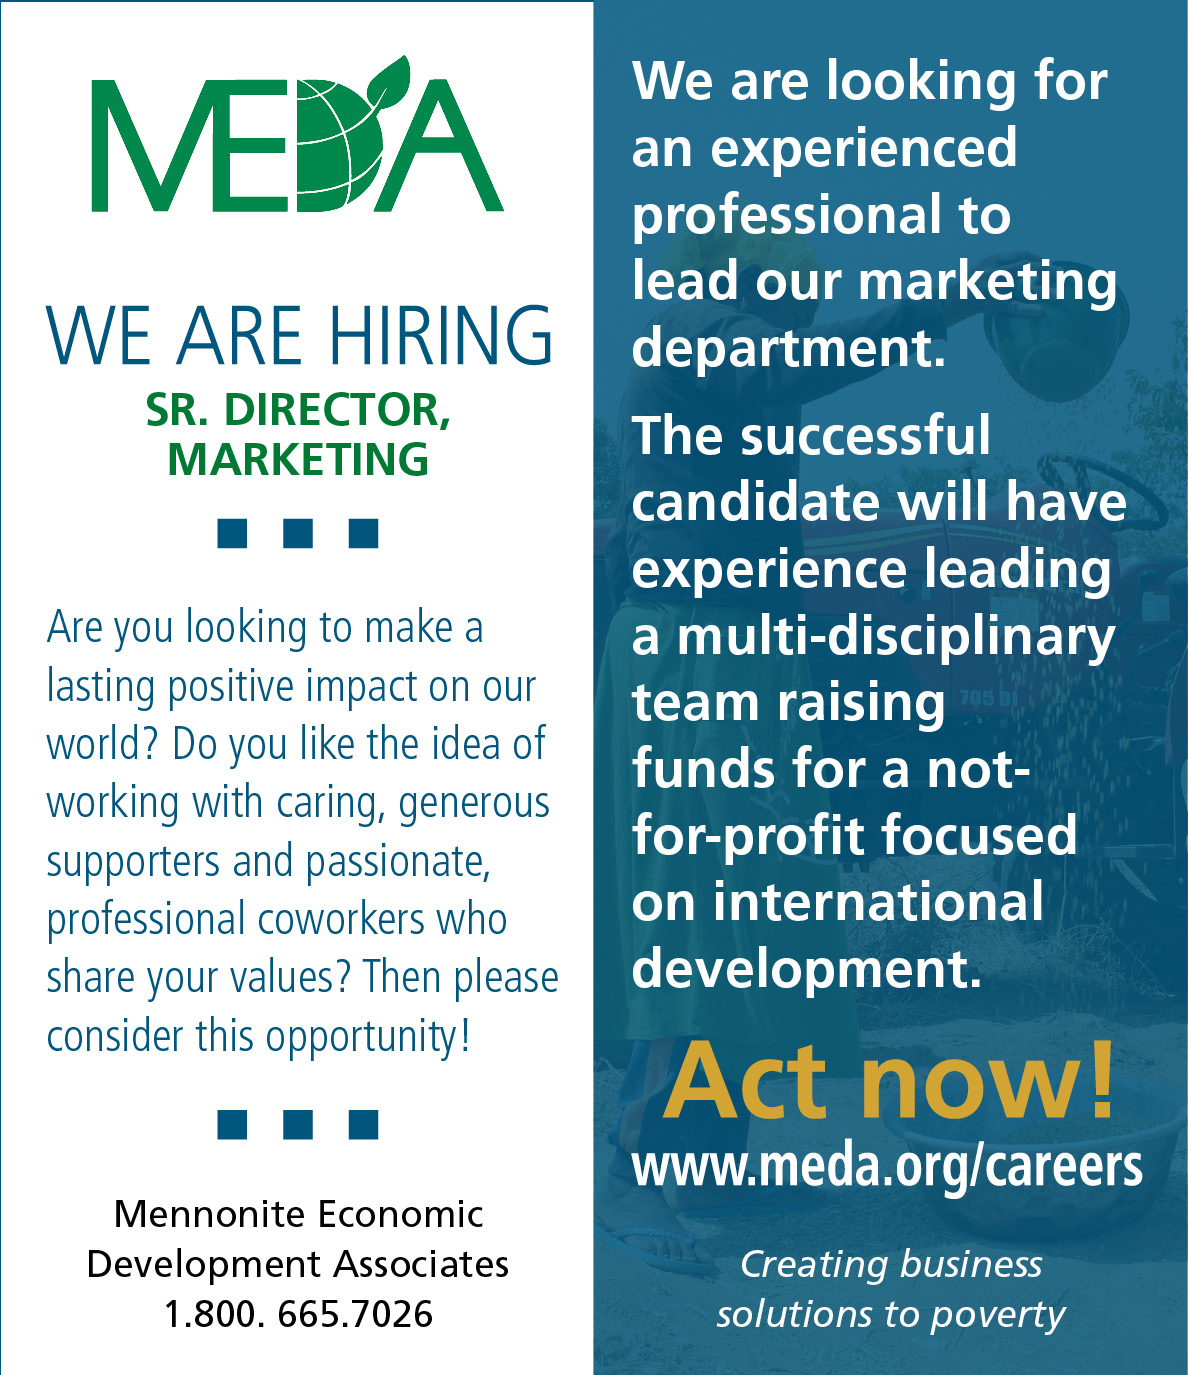 MEDA marketing director